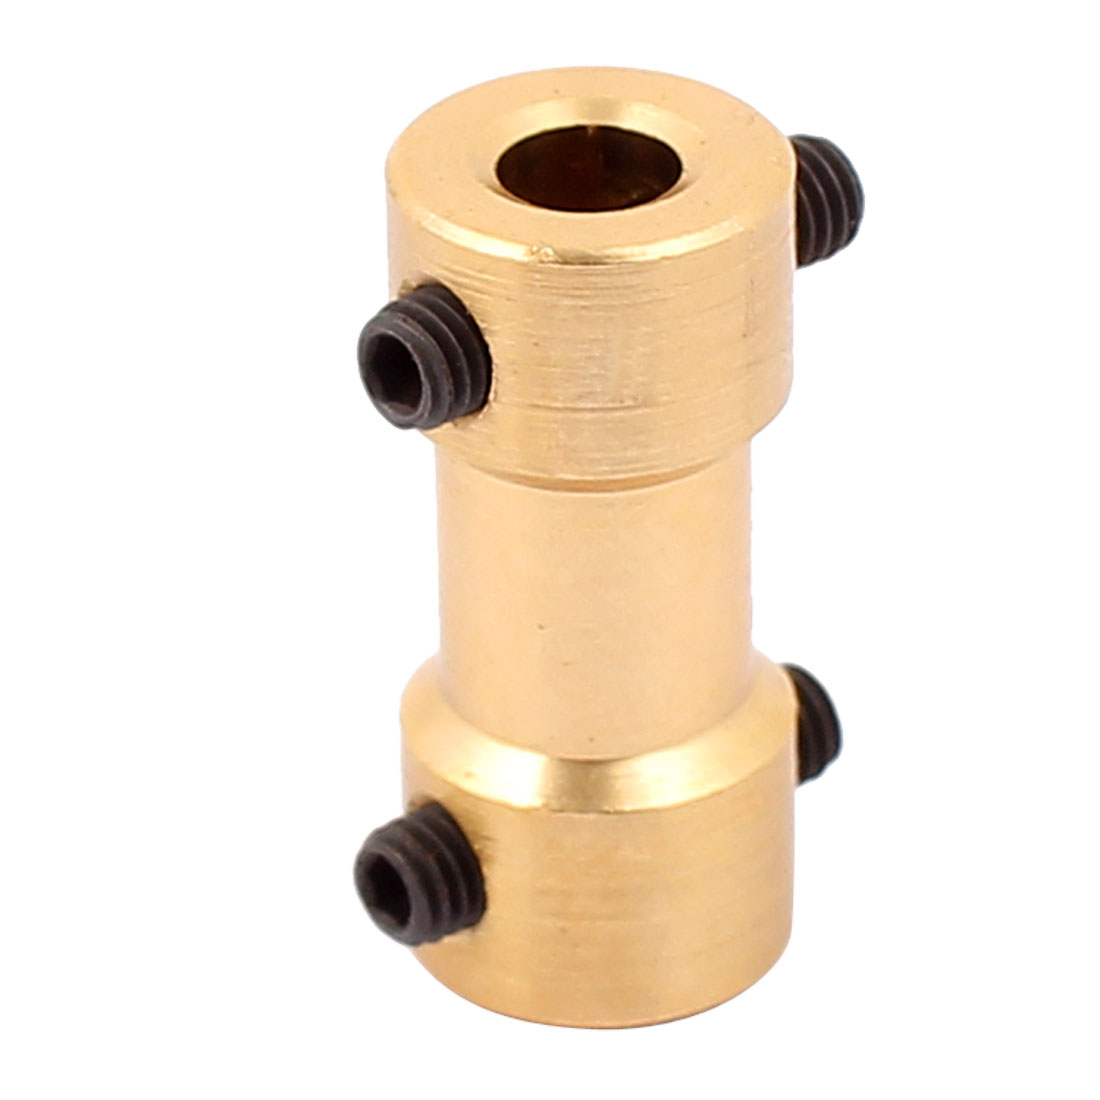 4mm to 3.17mm Copper DIY Motor Shaft Coupling Joint Connector for Electric Toy